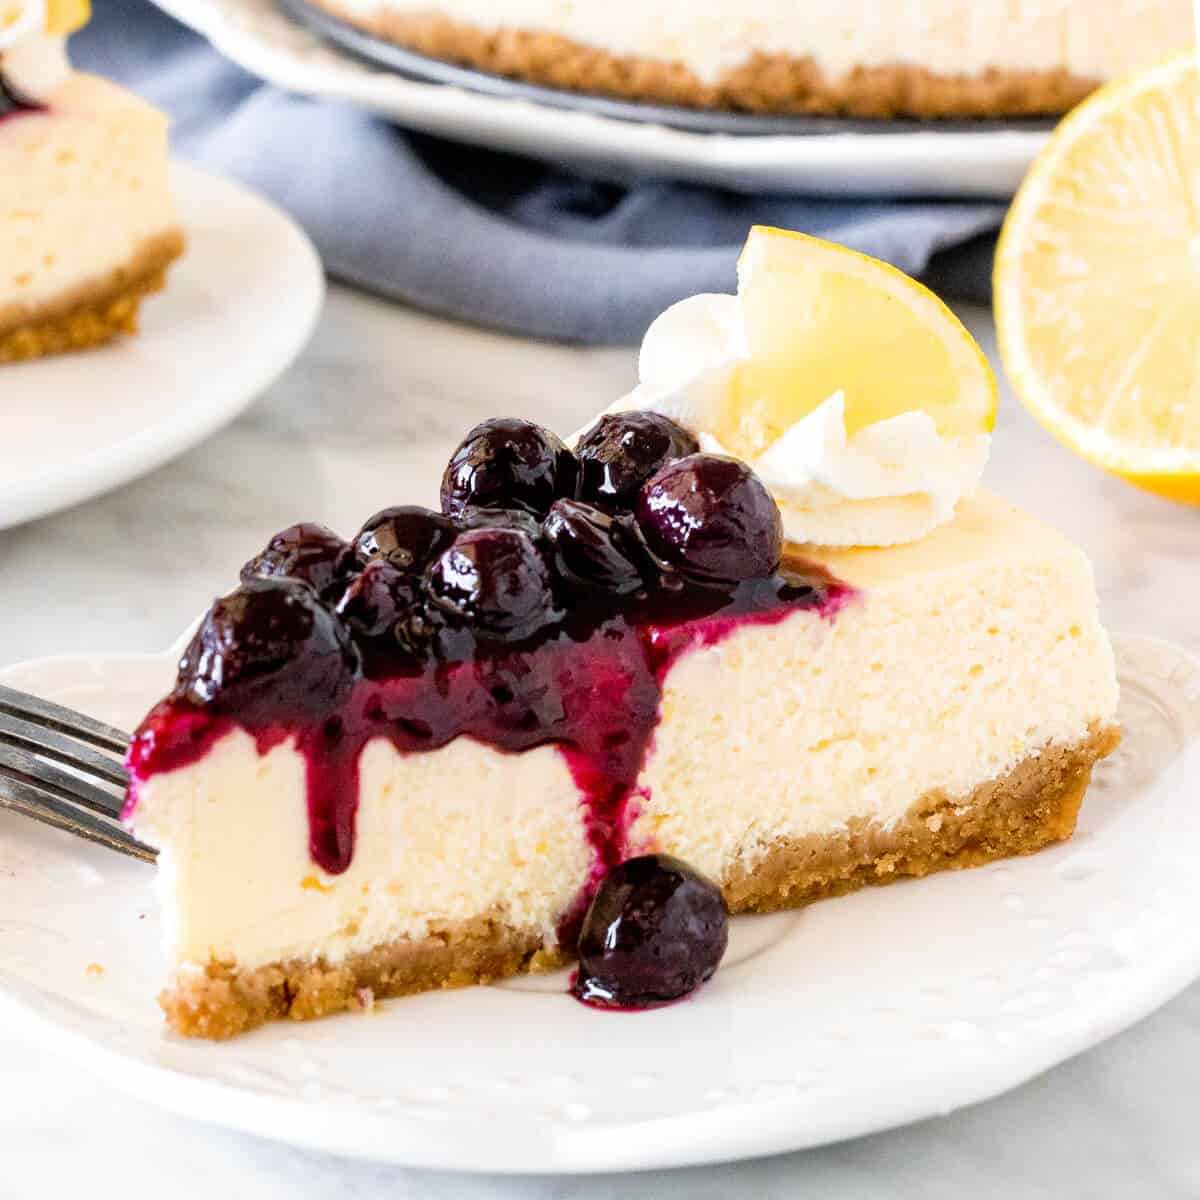 Slice of lemon cheesecake with blueberry sauce